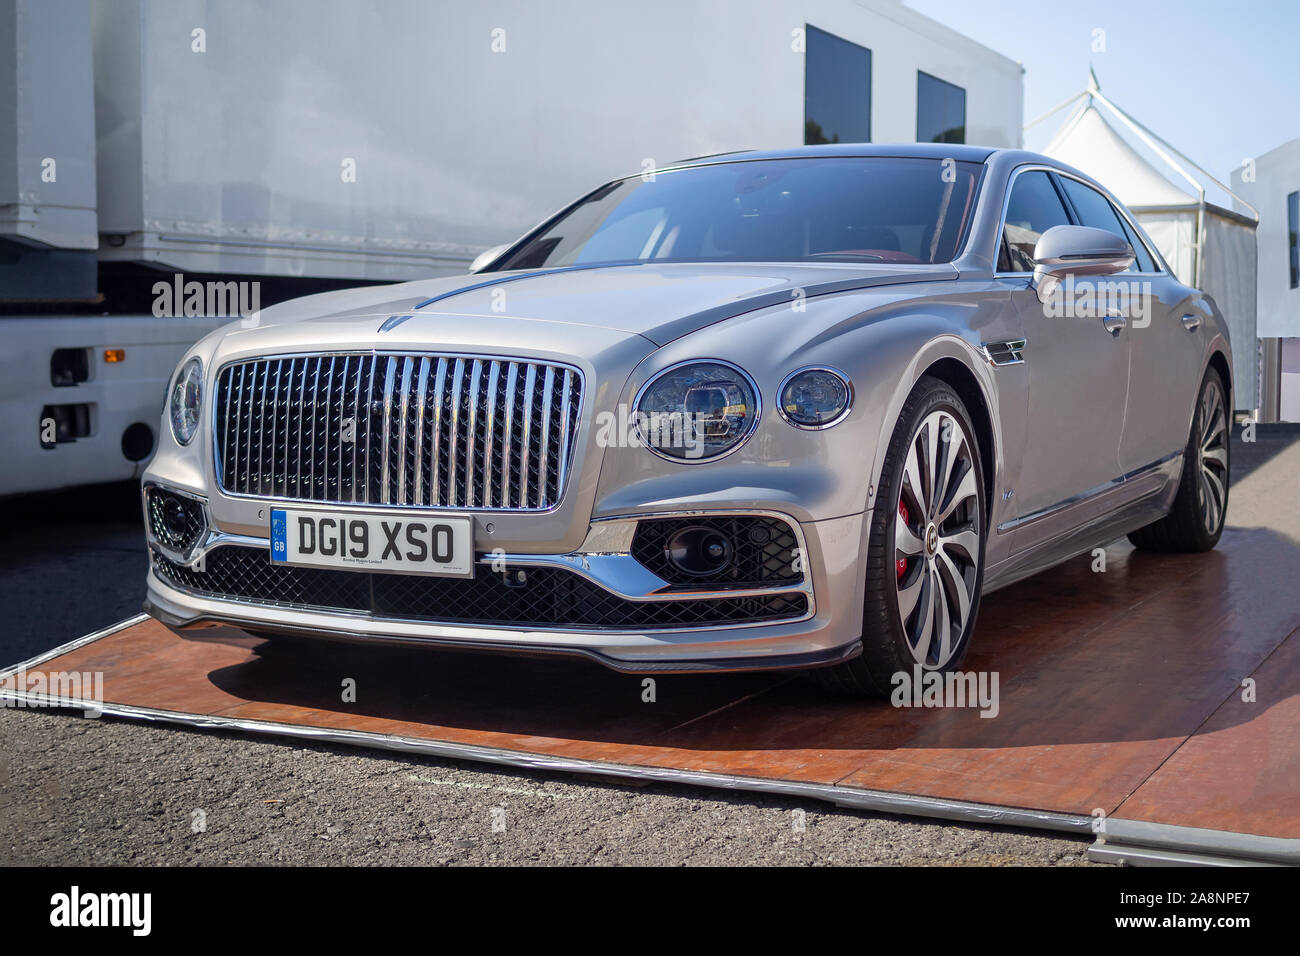 Bentley Flying Spur High Resolution Stock Photography And Images Alamy